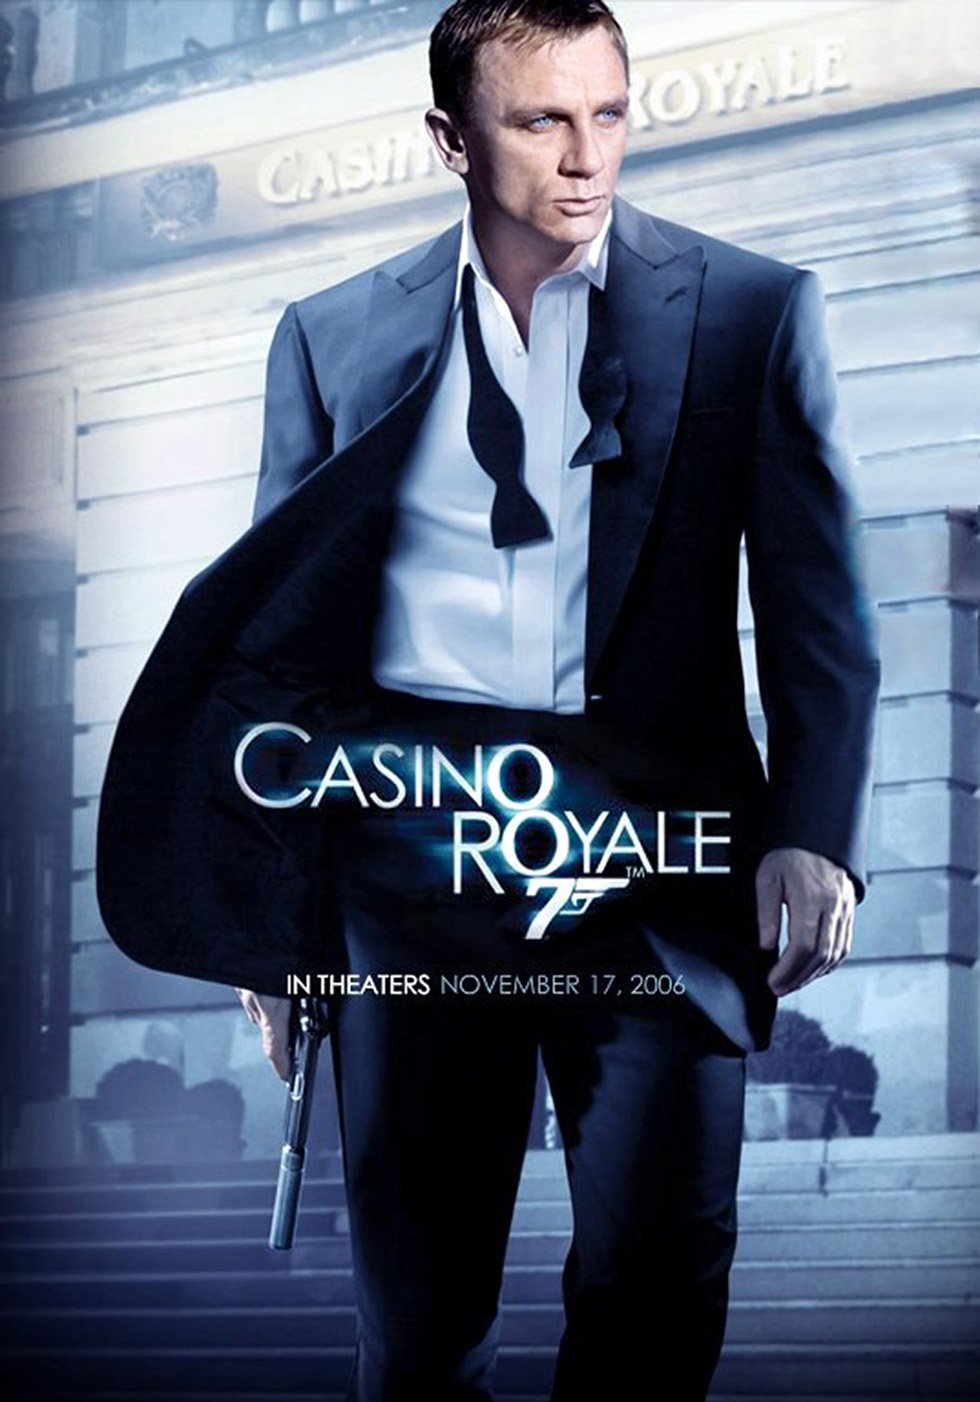 casino royale movie online free live casino deutschland